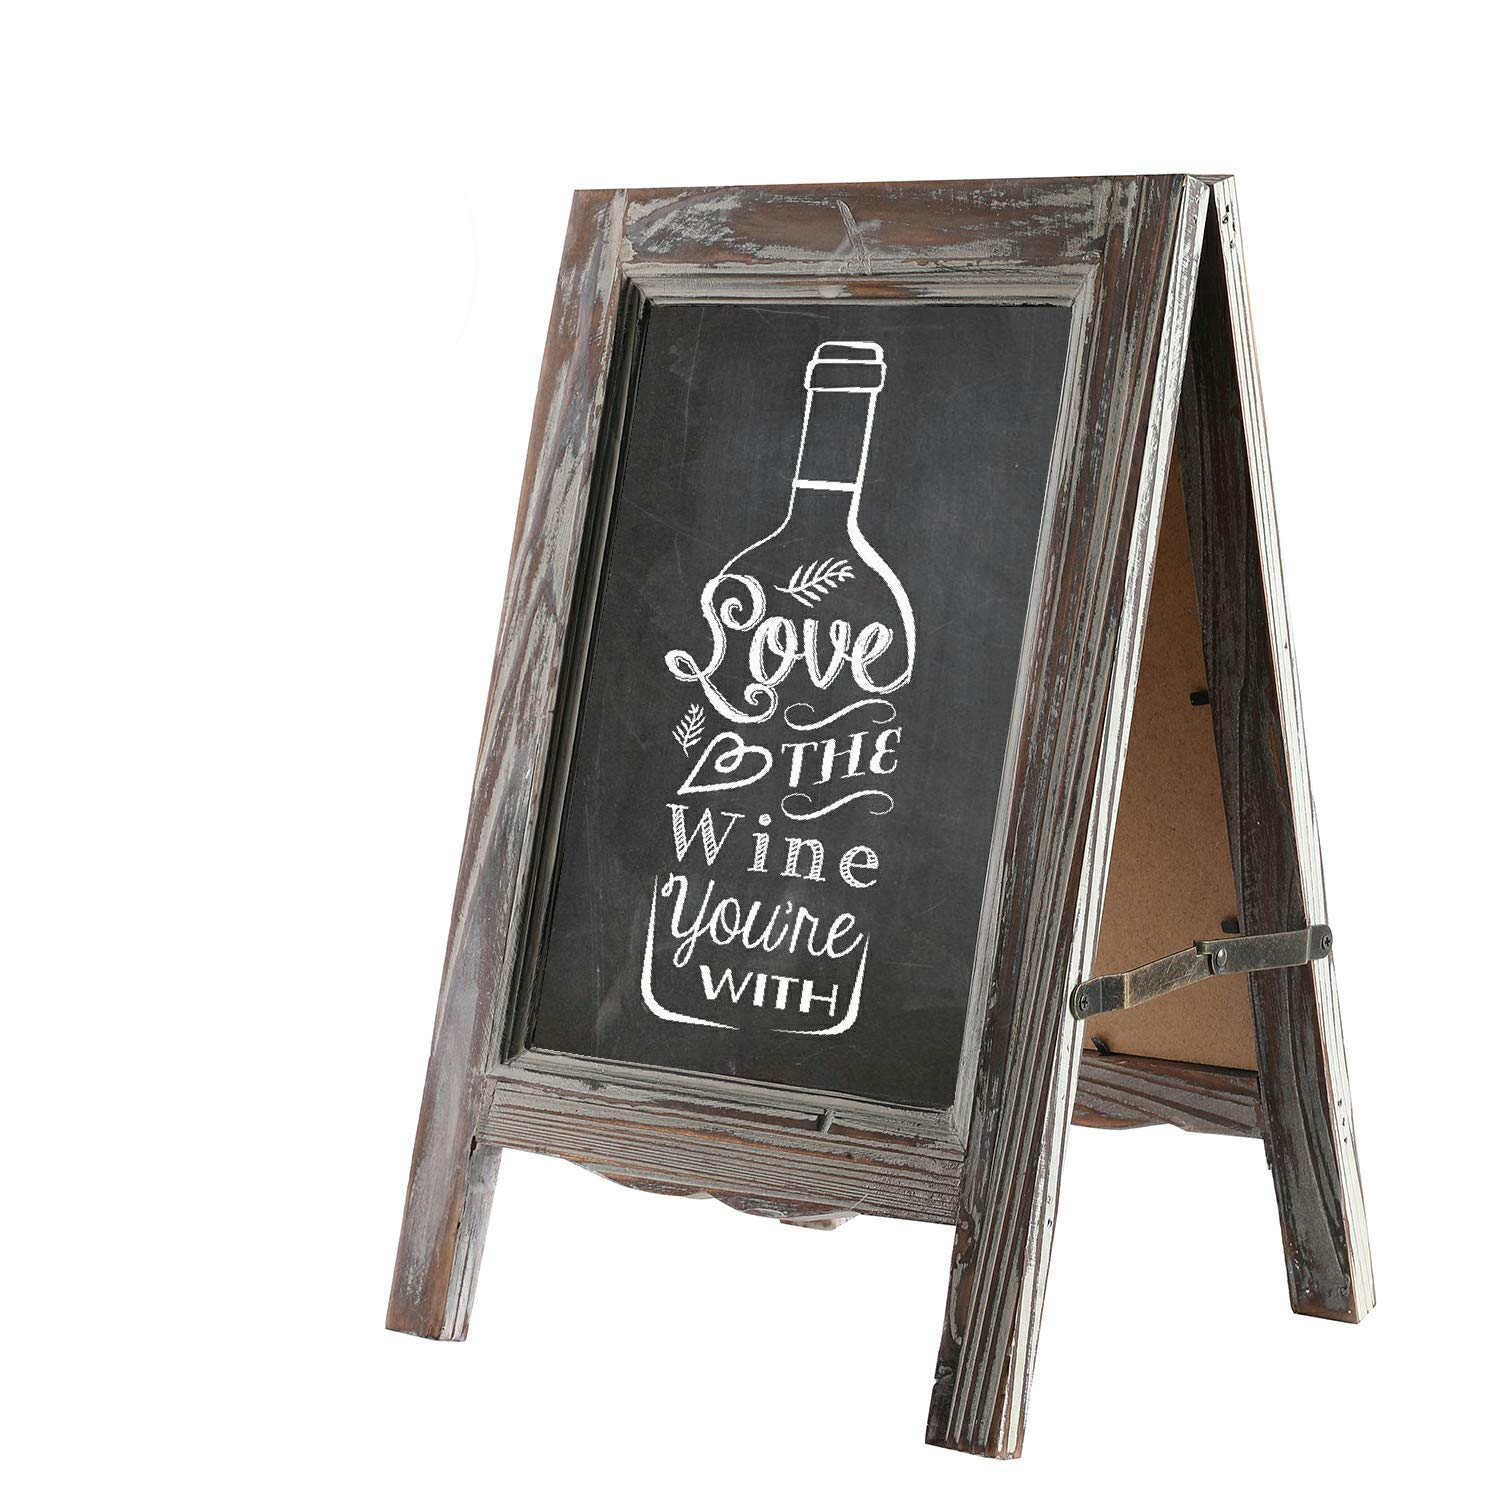 Liry Products 15 inch Wooden Chalkboard Vintage Small Rustic Finish A-Frame Sandwich Sign Dual Double-Sided Blackboard Easel Scalloped Bottom for Indoor, Restaurant, Sidewalk, Cafe, Bar